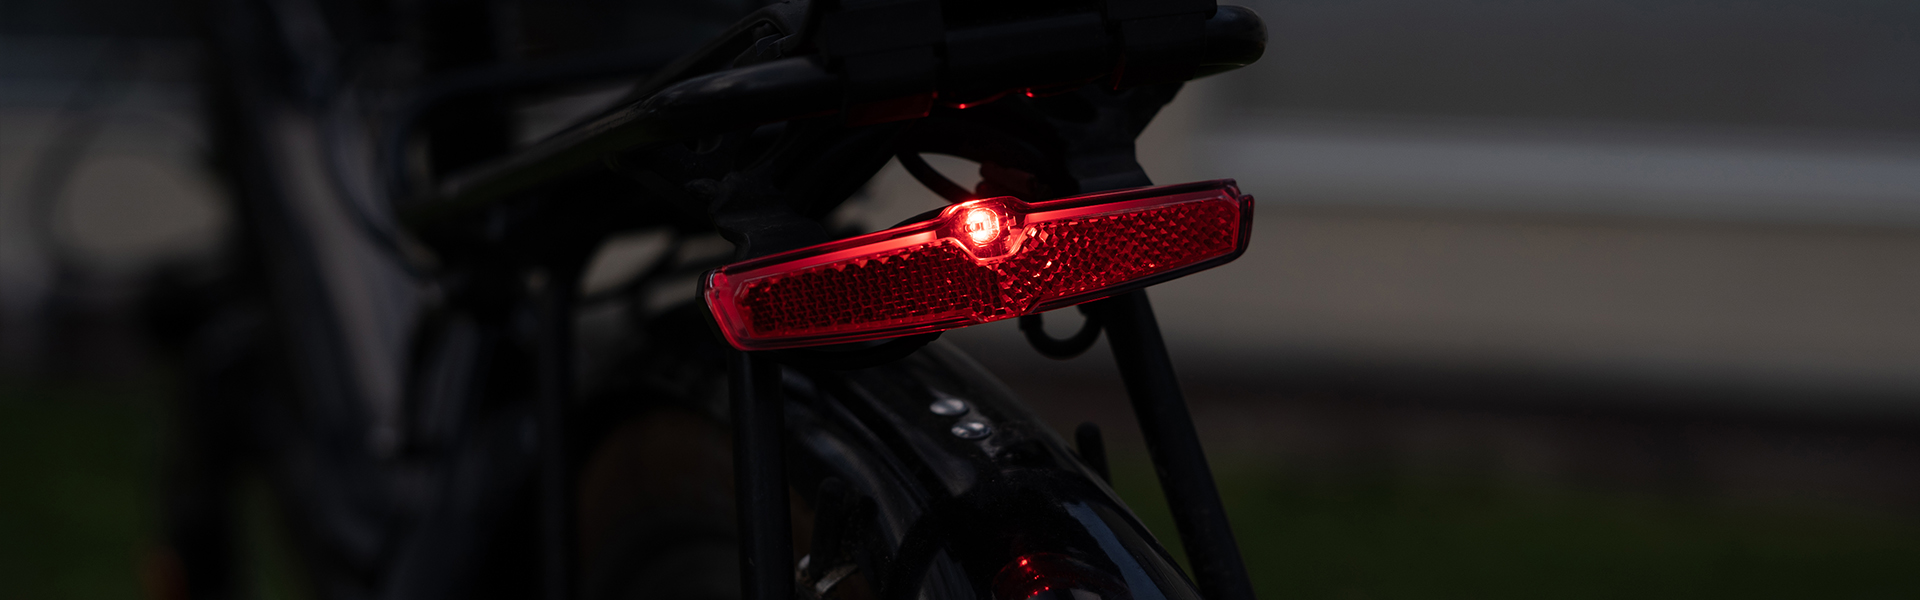 M1 Escooter/ ebike/ hub dynamo rear light/ bicycle rear light/bicycle taillight